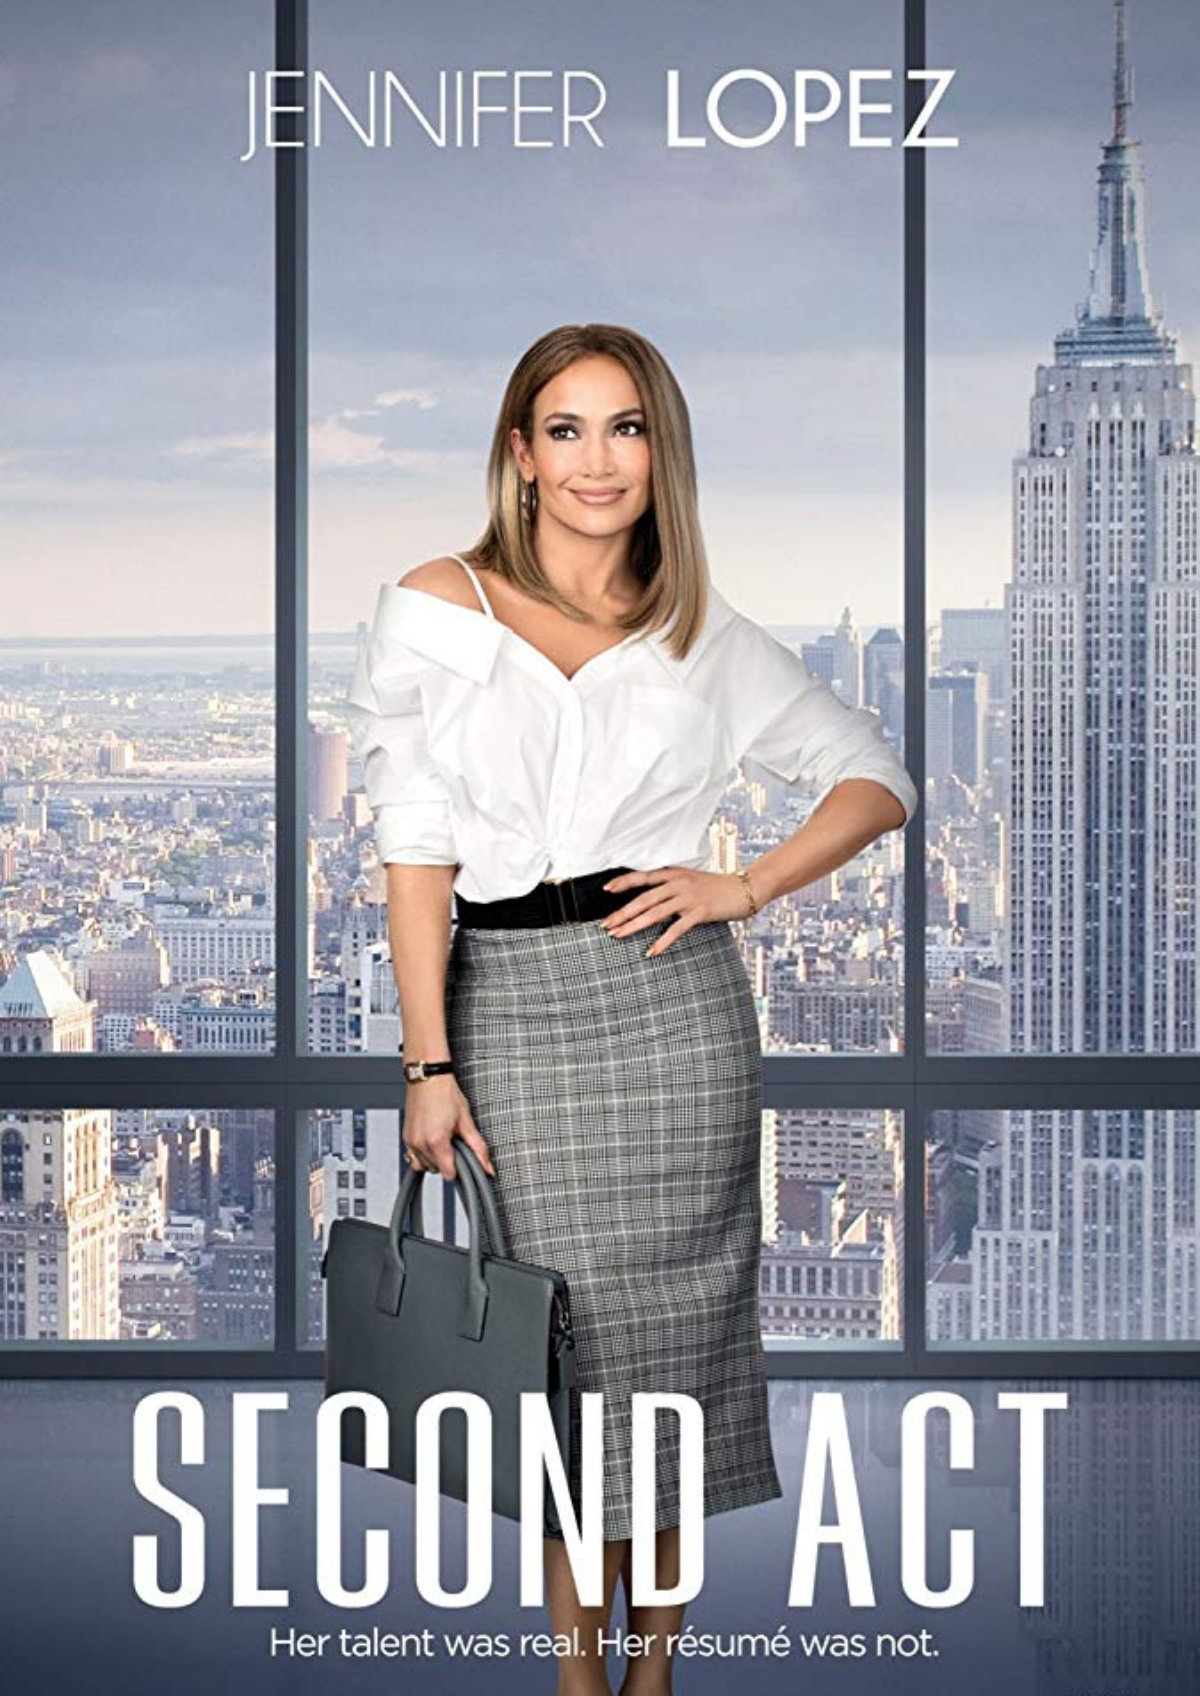 'Second Act' movie poster